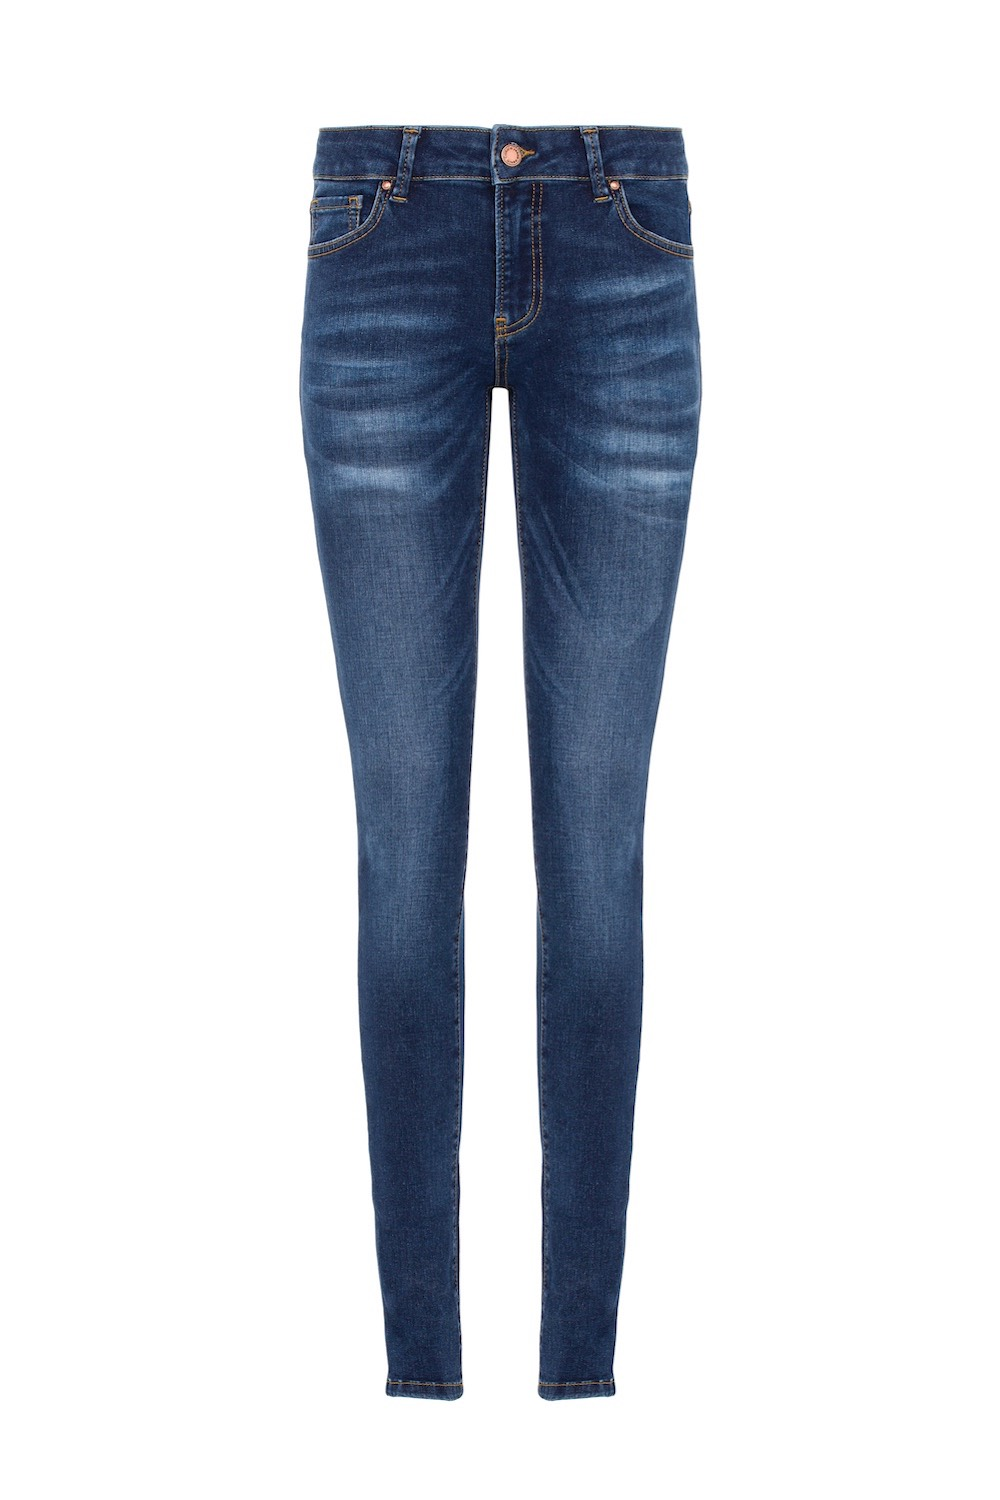 Straight Fit Woven Jean ANTONIA Damen